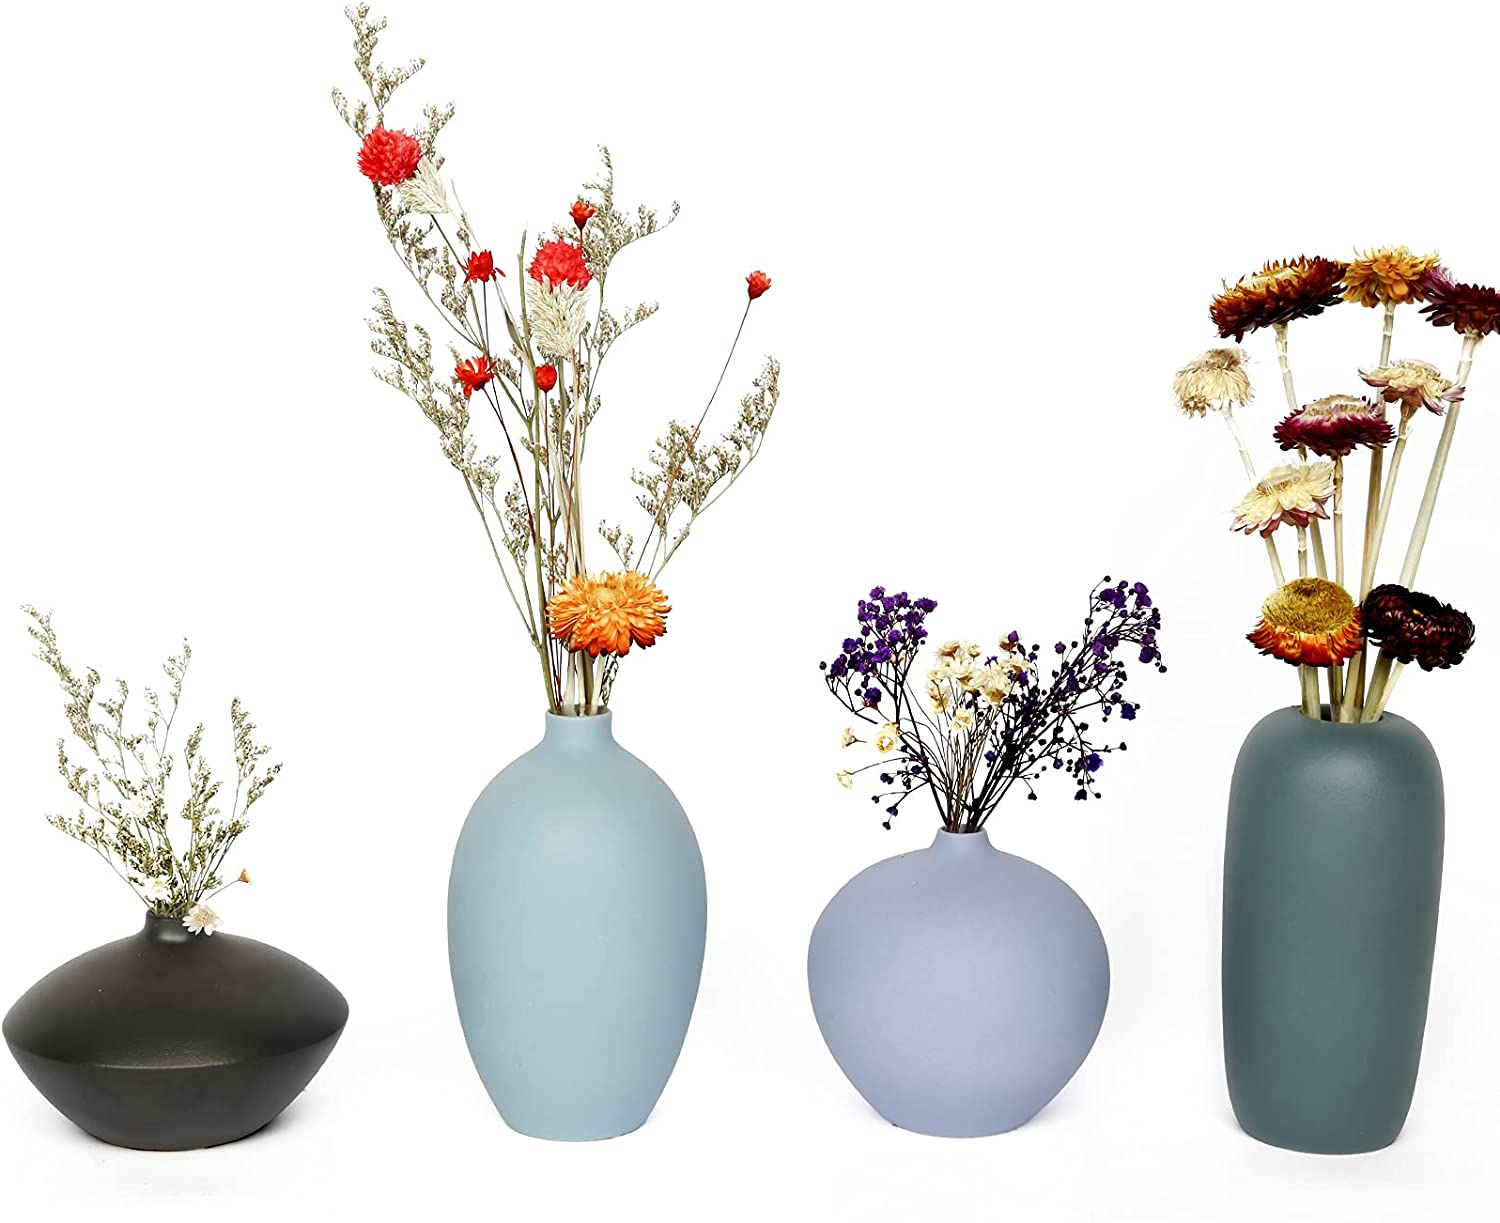 Exqelf Max 70% OFF Small Ceramic Vase Decorative Set Louisville-Jefferson County Mall Bud Flower Vases 4 of